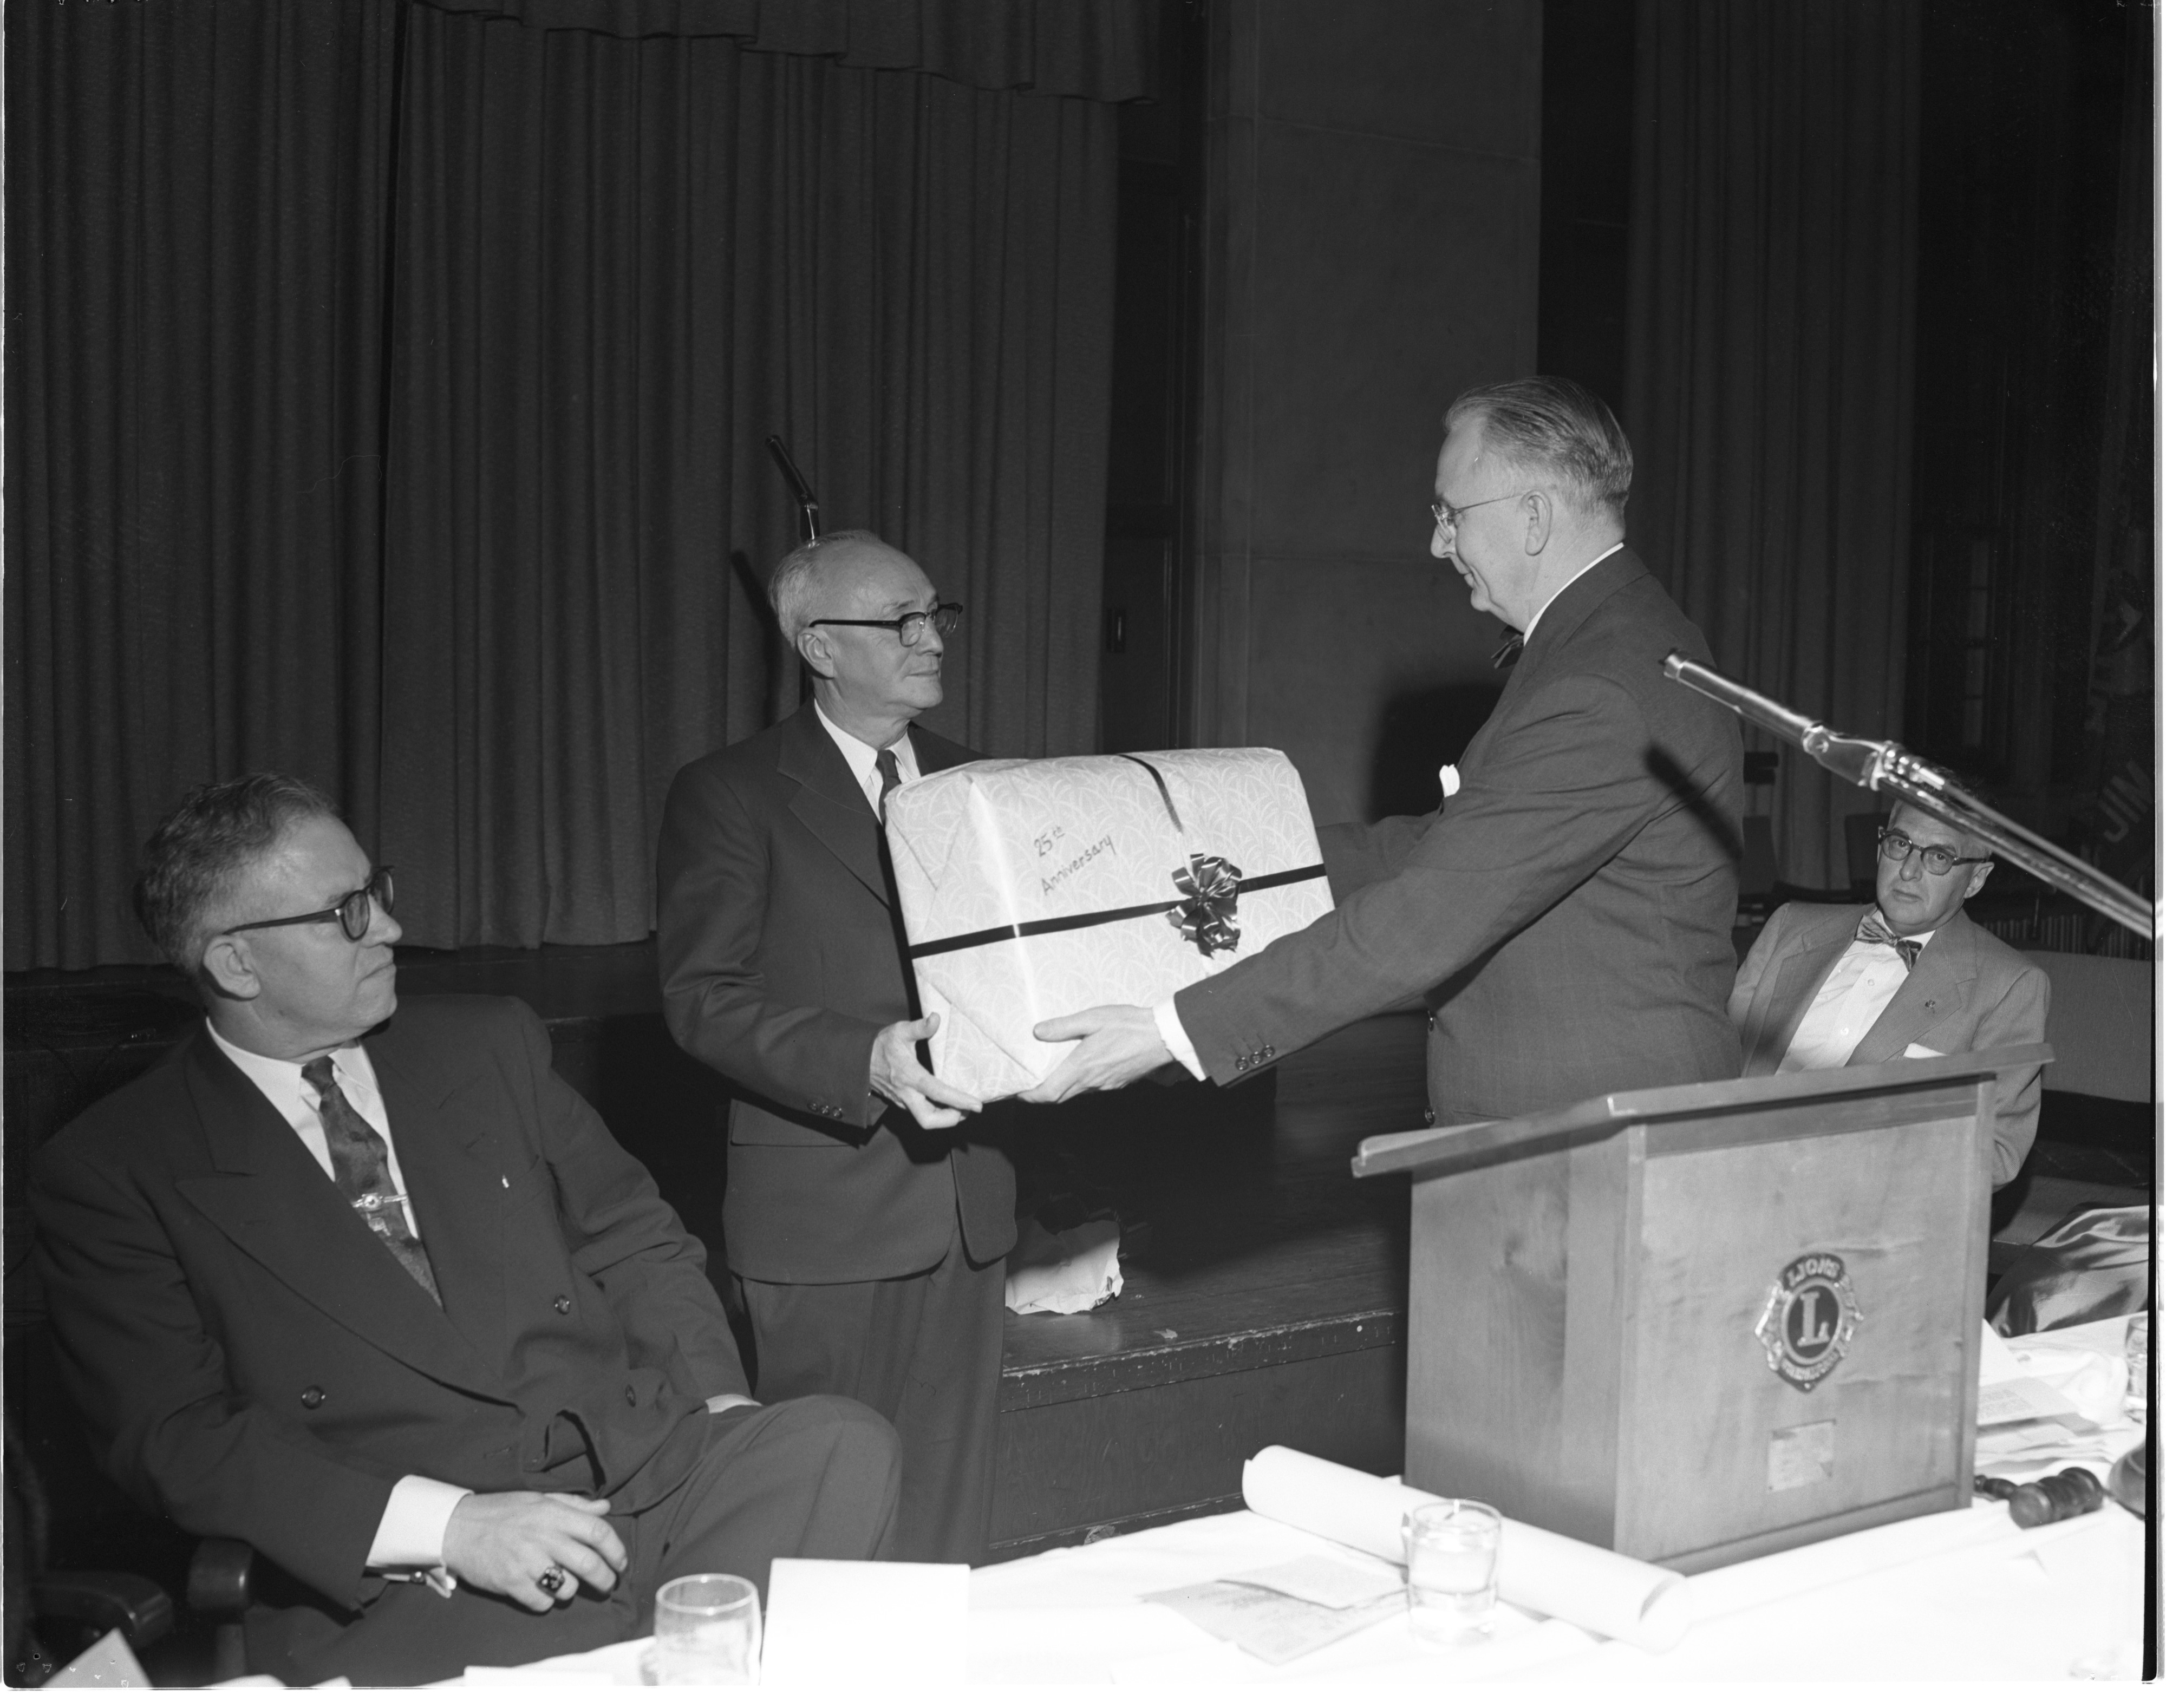 Harold C. Baker Receives A Gift At The Ann Arbor Lions Club 25th Anniversary Party, May 1954 image